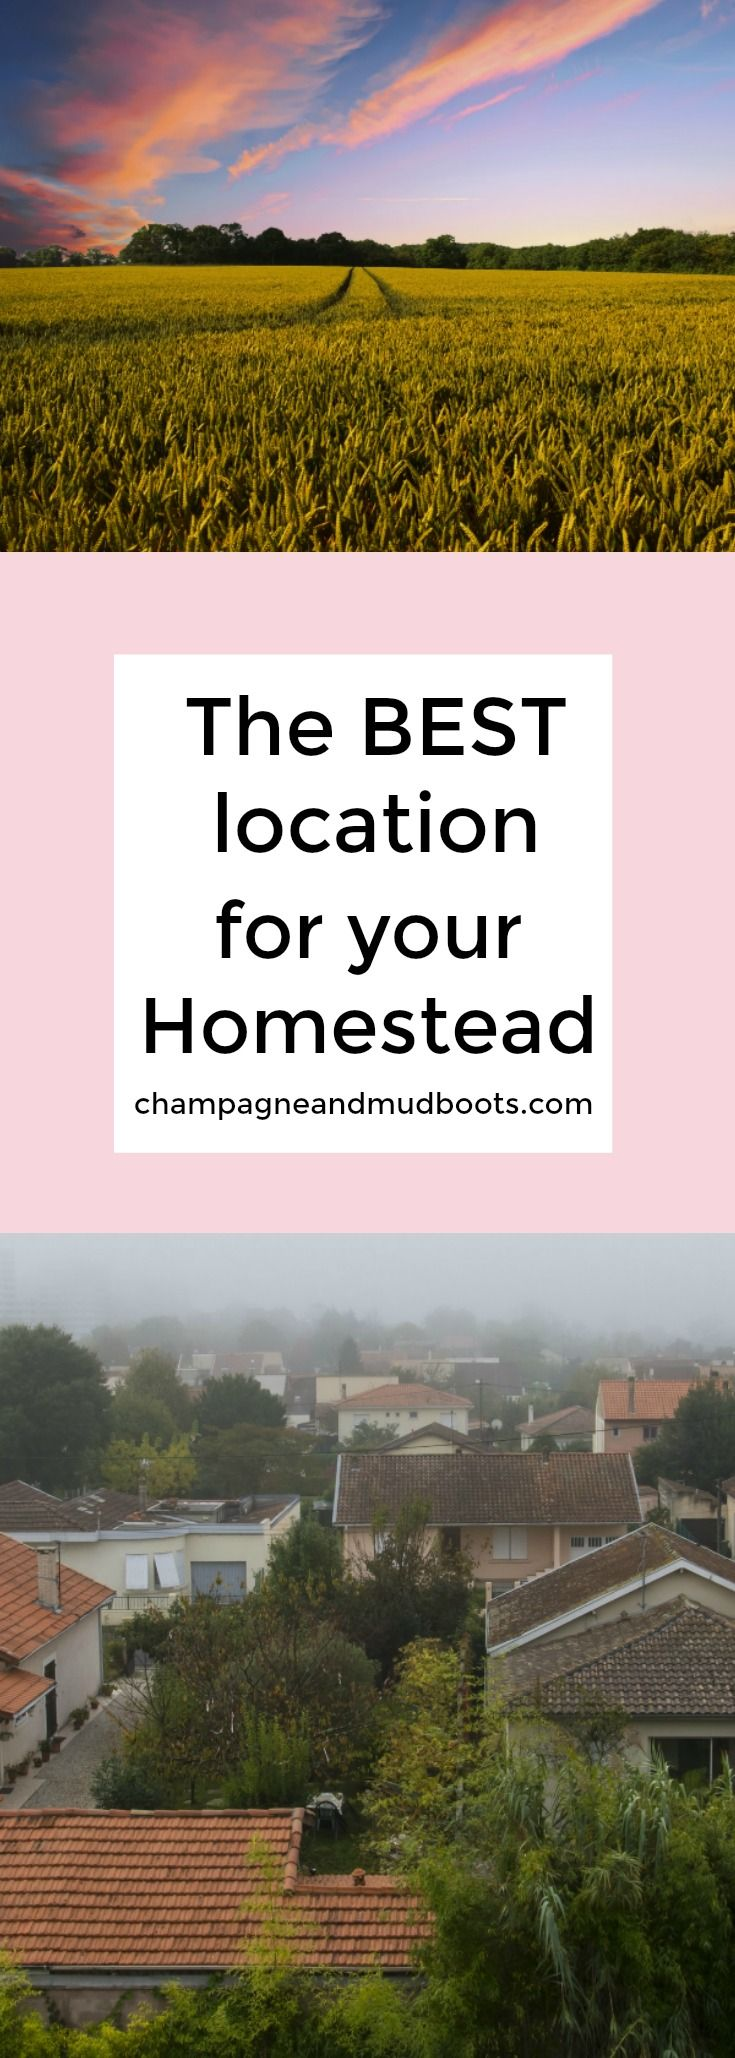 Top 10 Reasons to Have a Homestead in the Suburban Rural